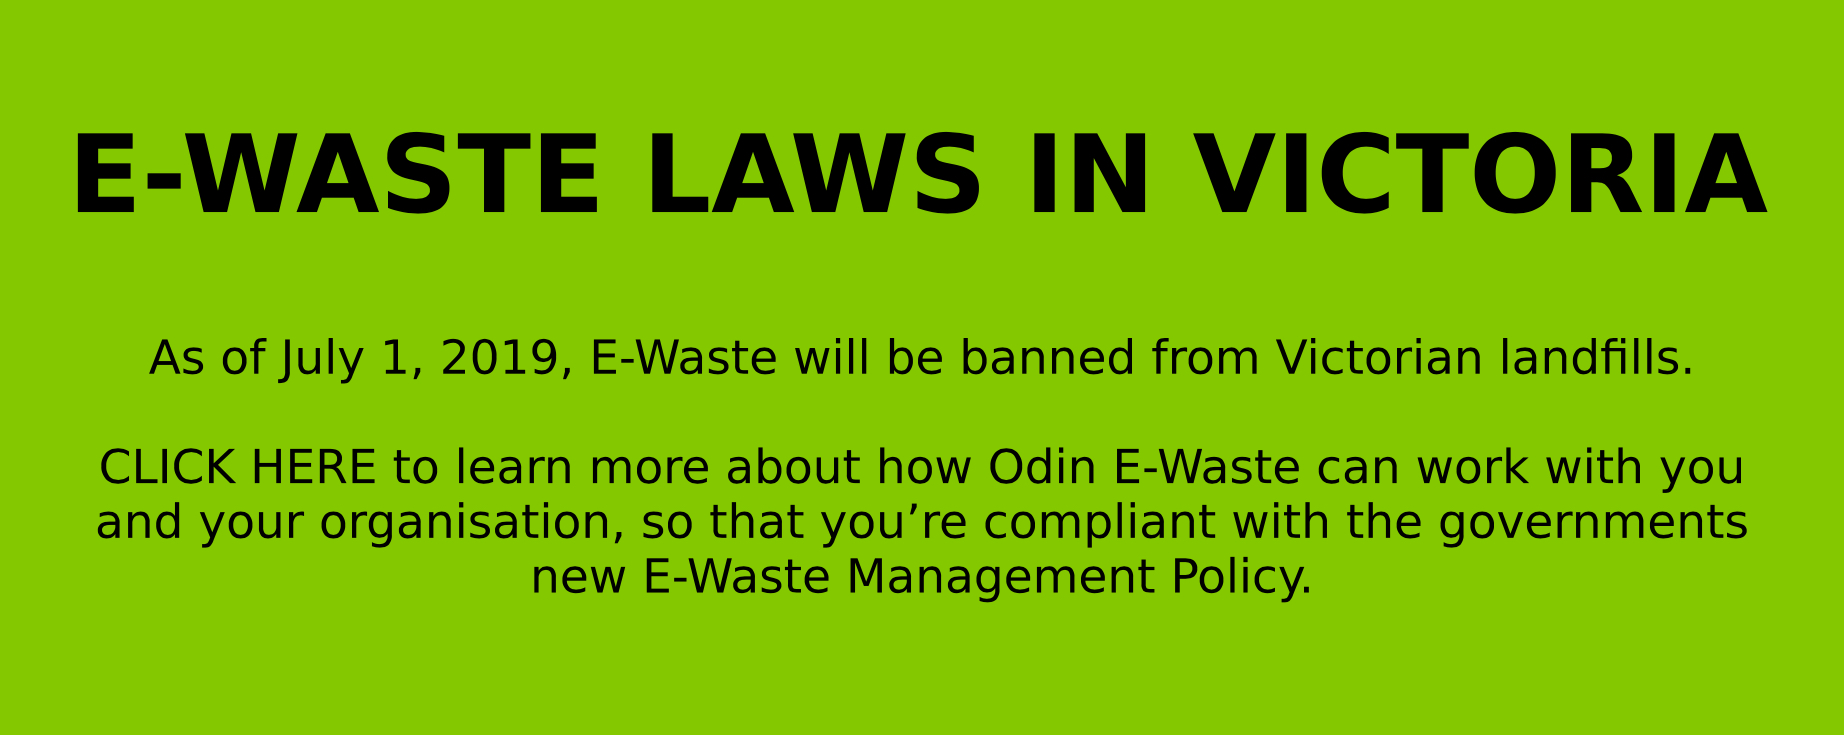 New E-Waste Law